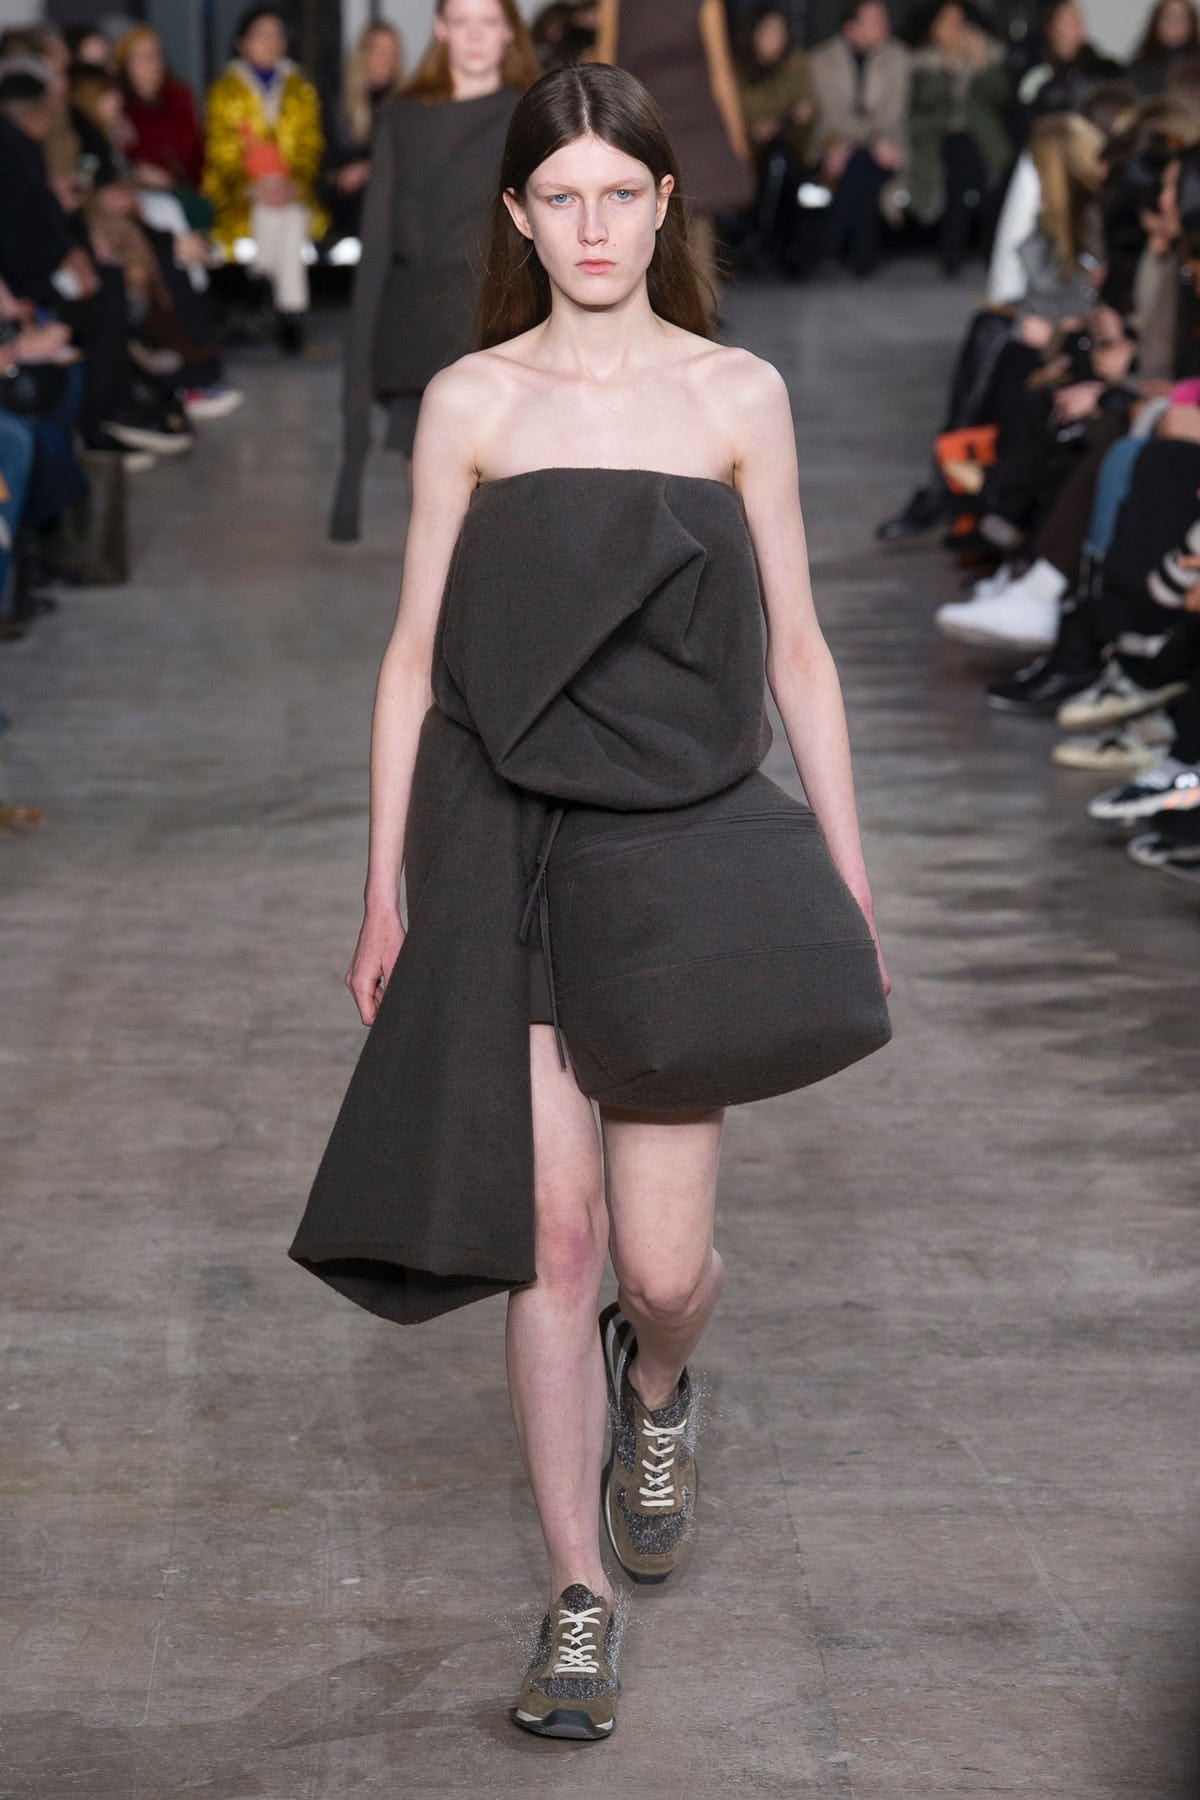 A Dreamy Carnality at Rick Owens